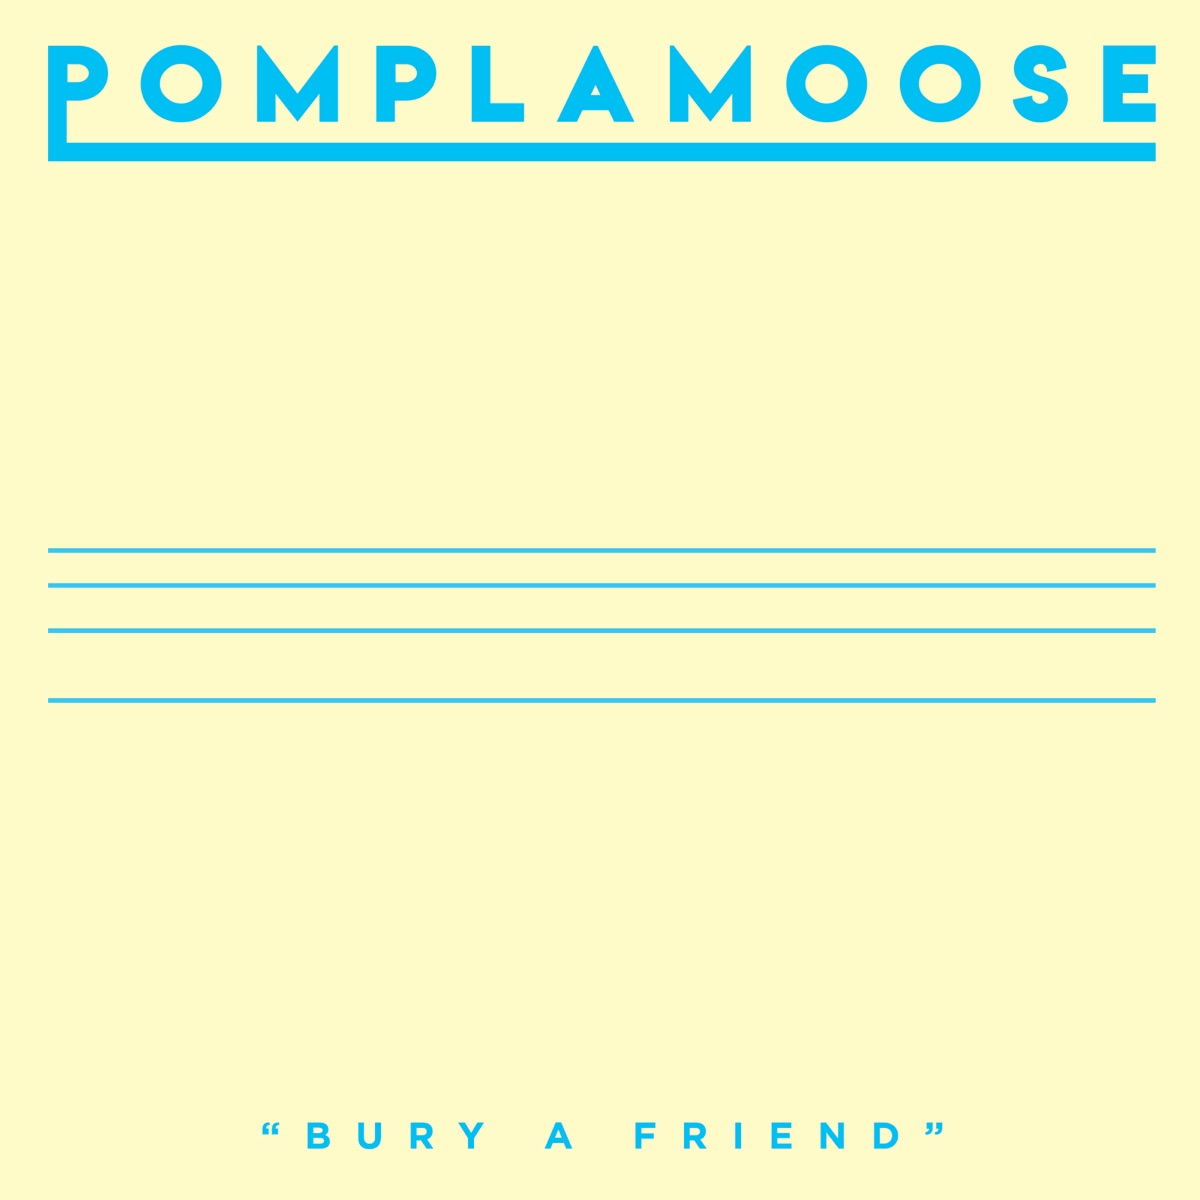 Bury a Friend - Single Pomplamoose CD cover